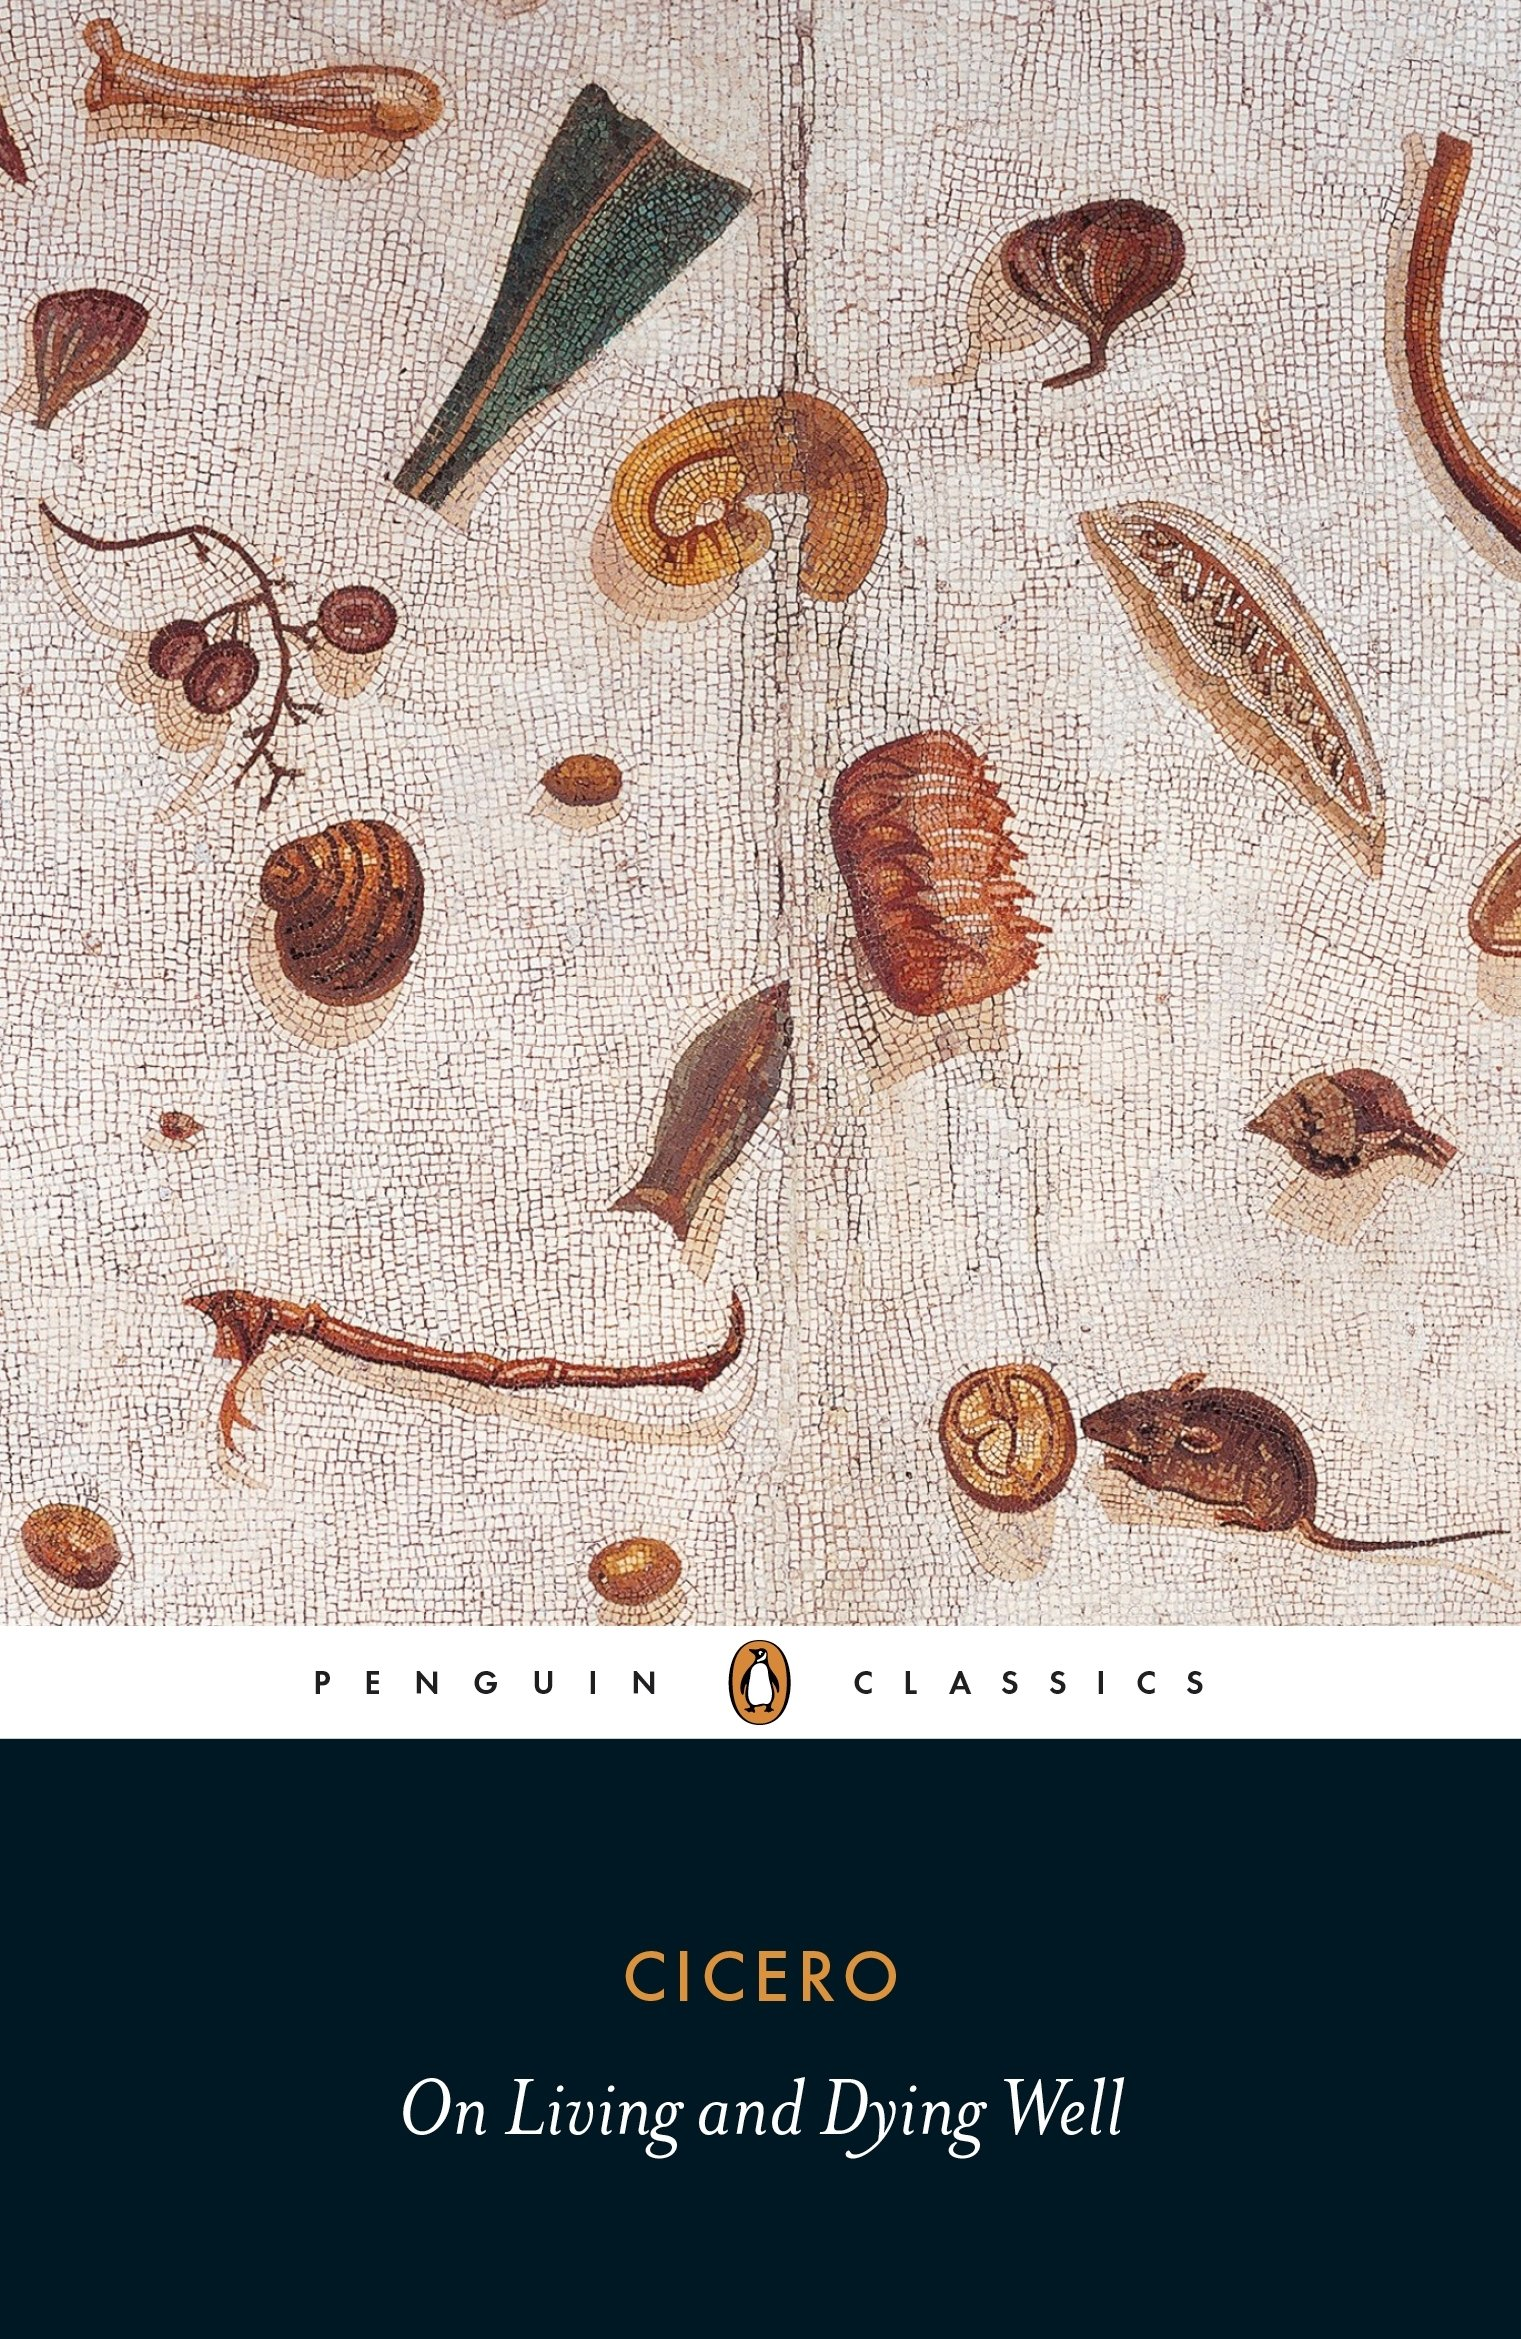 On Living and Dying Well (Penguin Classics)